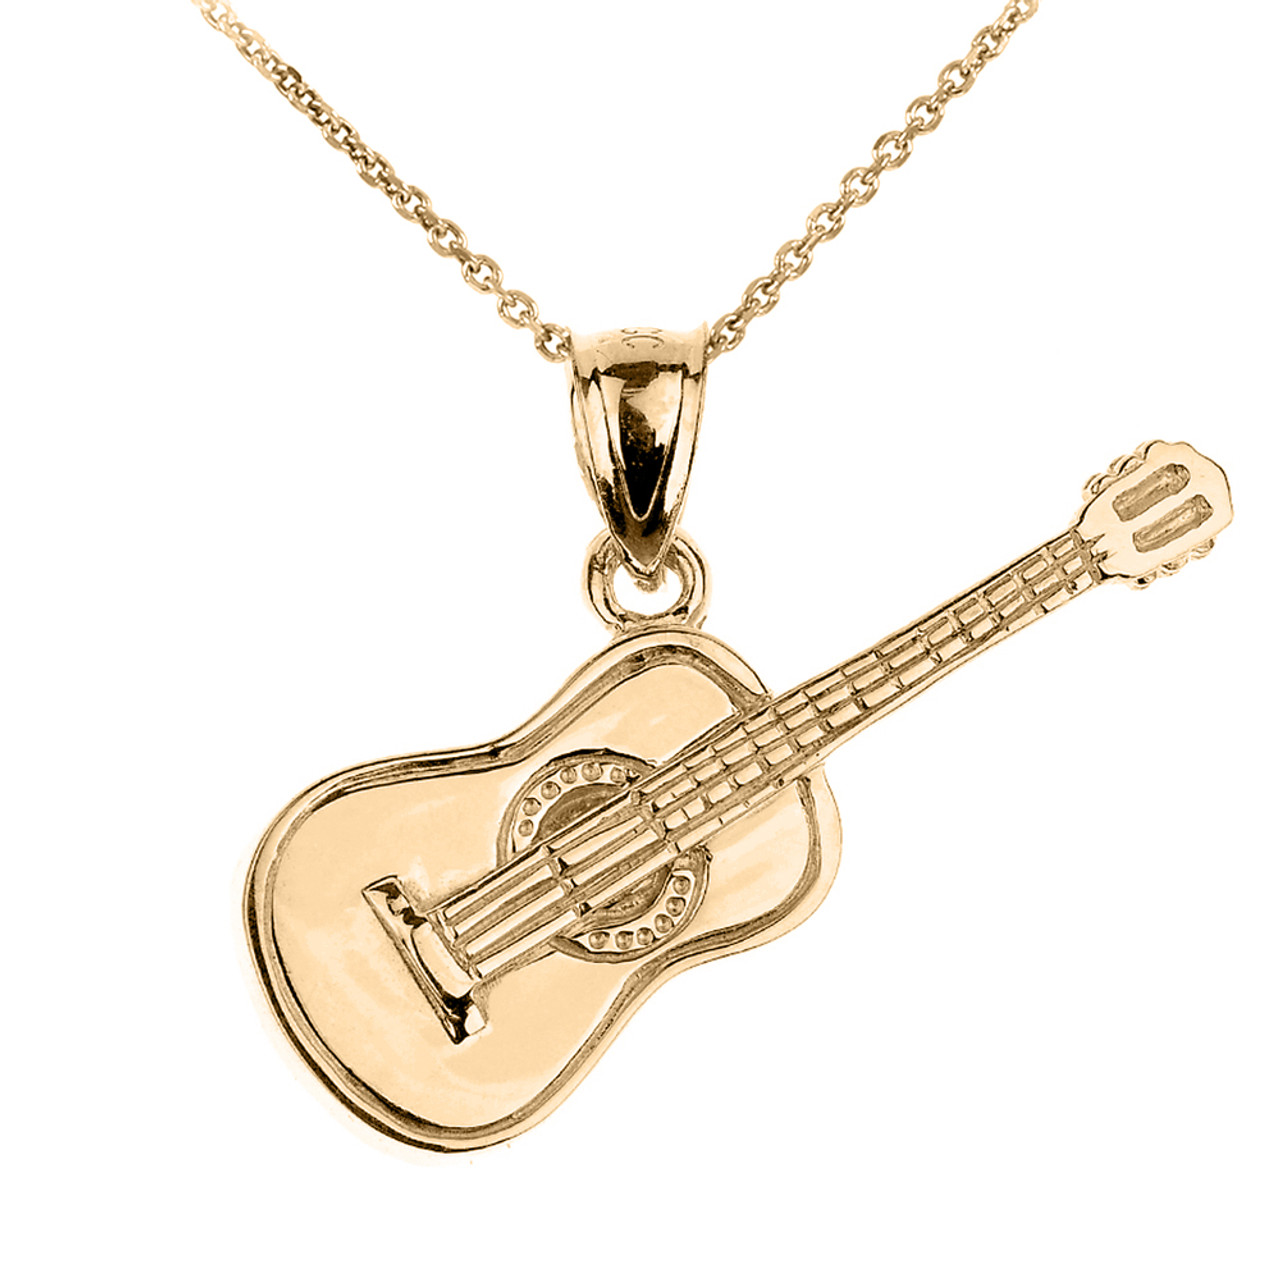 the bunker music steel free products chain guitar jewelry necklace rock vnox electric punk stainless pendant deal trendy